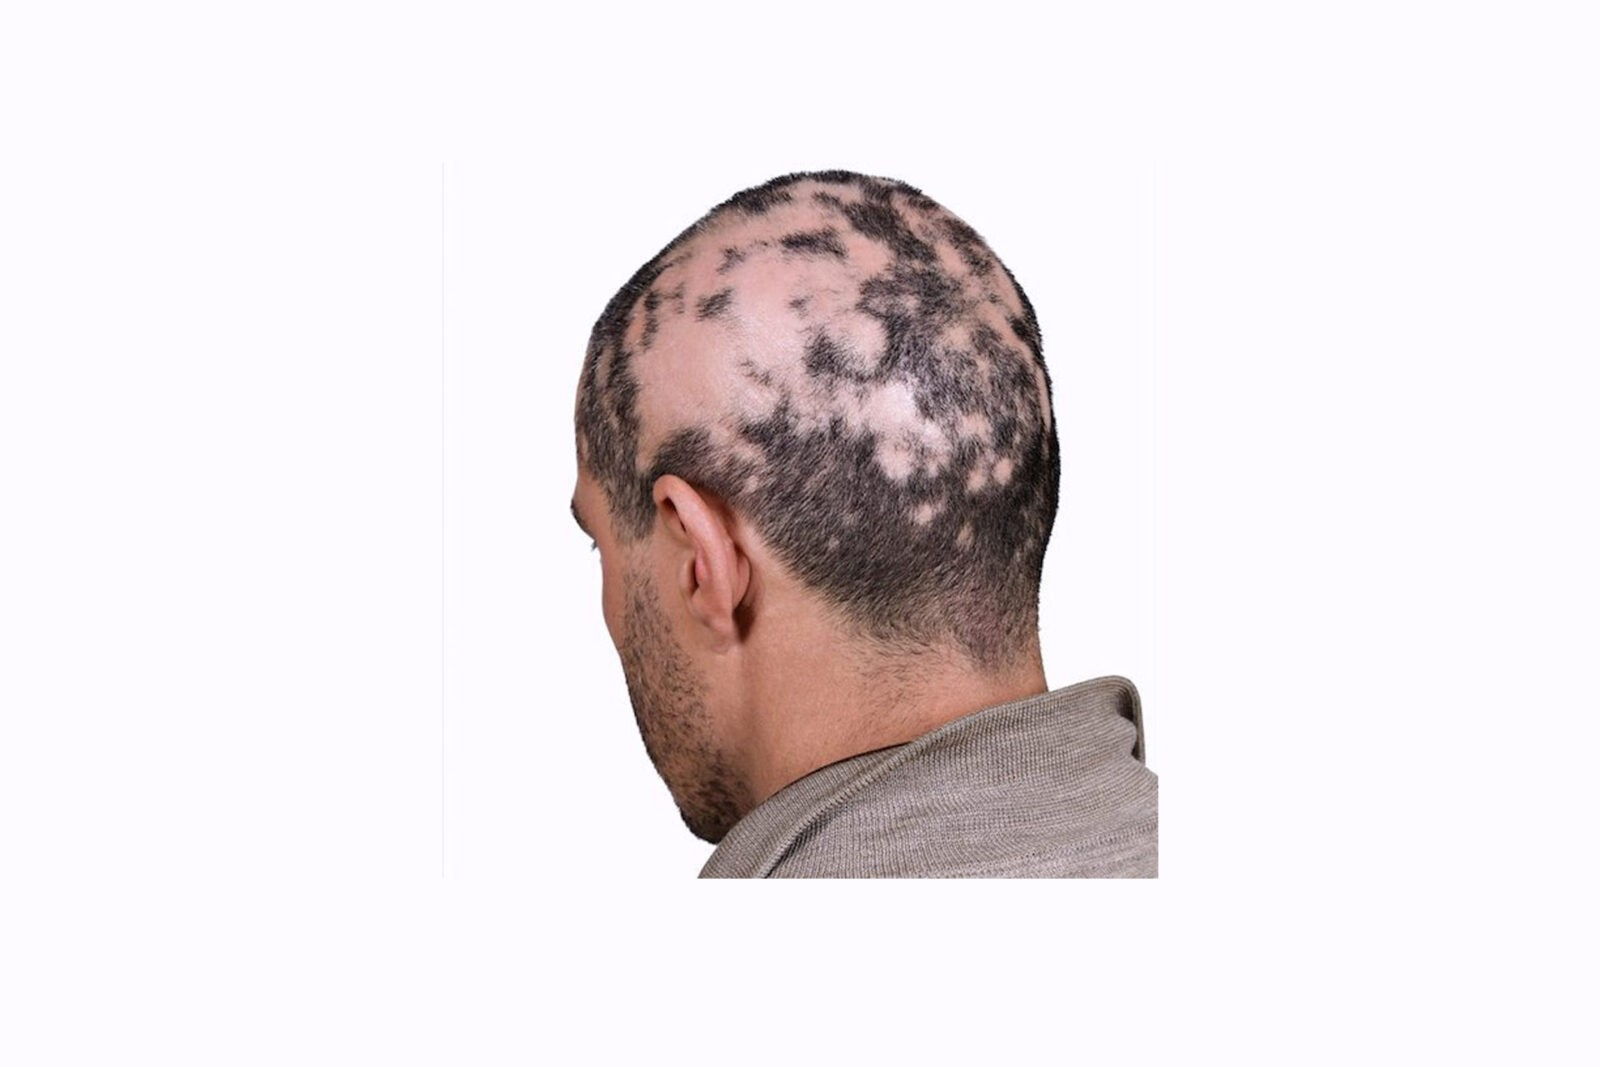 Scalp Micro Pigmentation (SMP) For The Treatment Of Alopecia